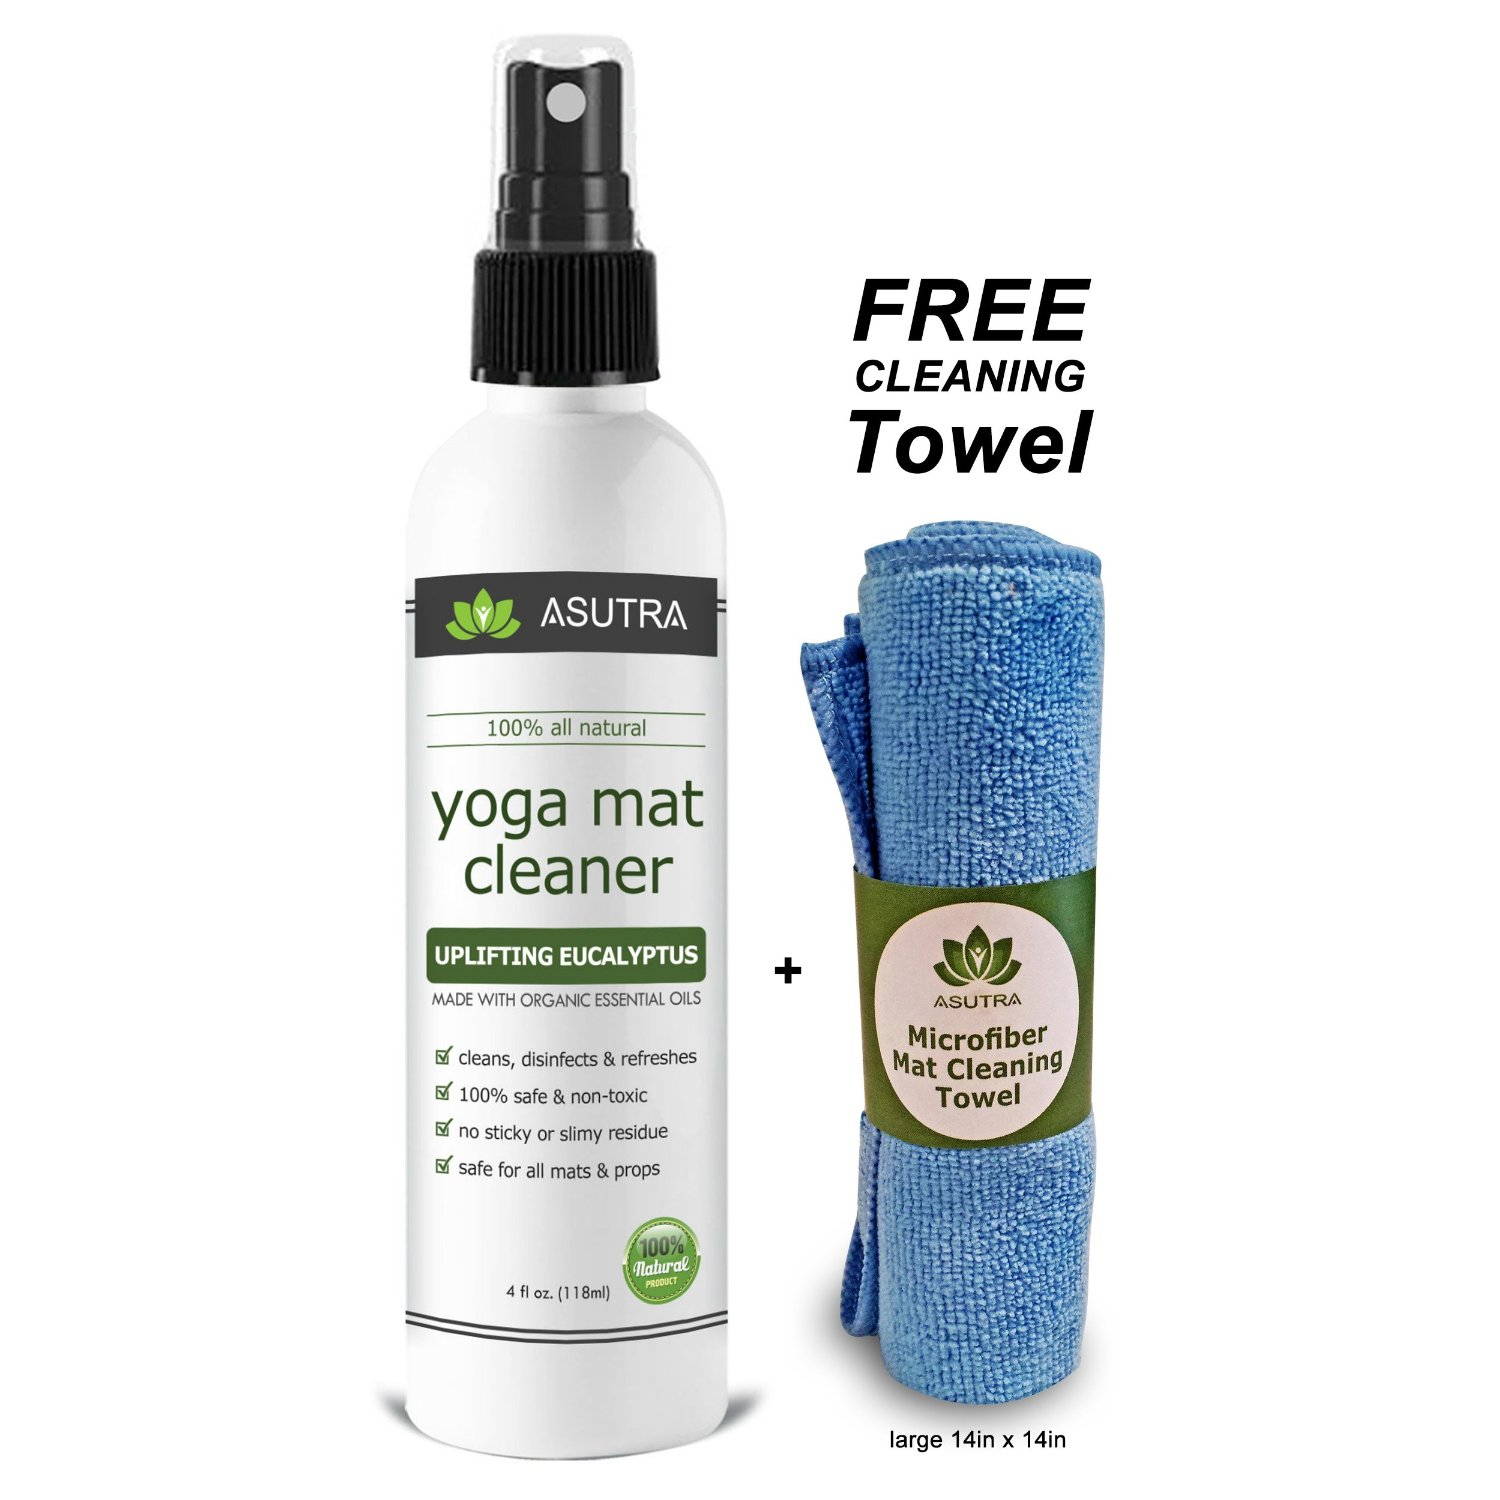 Asutra 100% All Natural Spray Exercise and Yoga Mat Cleaner